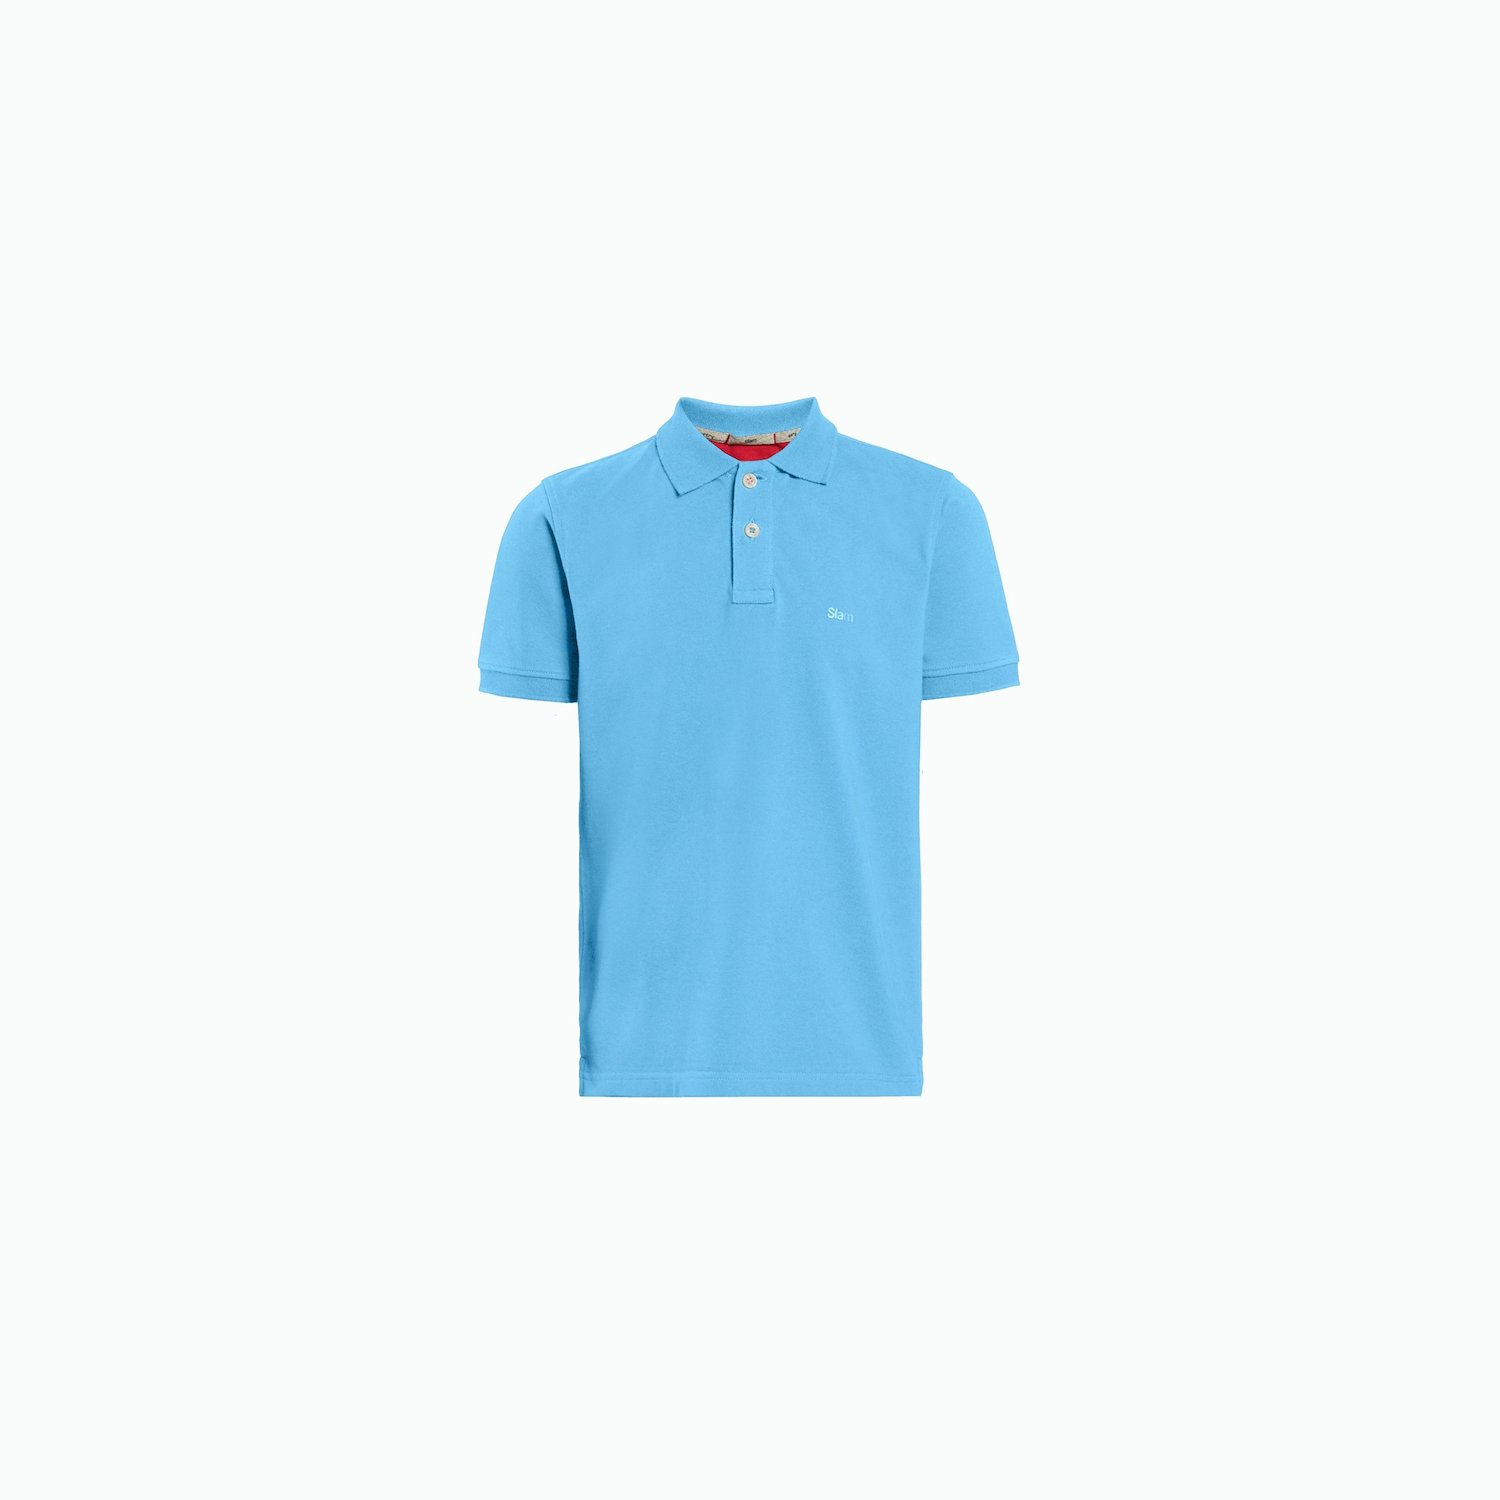 POLO JR A01 - Azul Claro